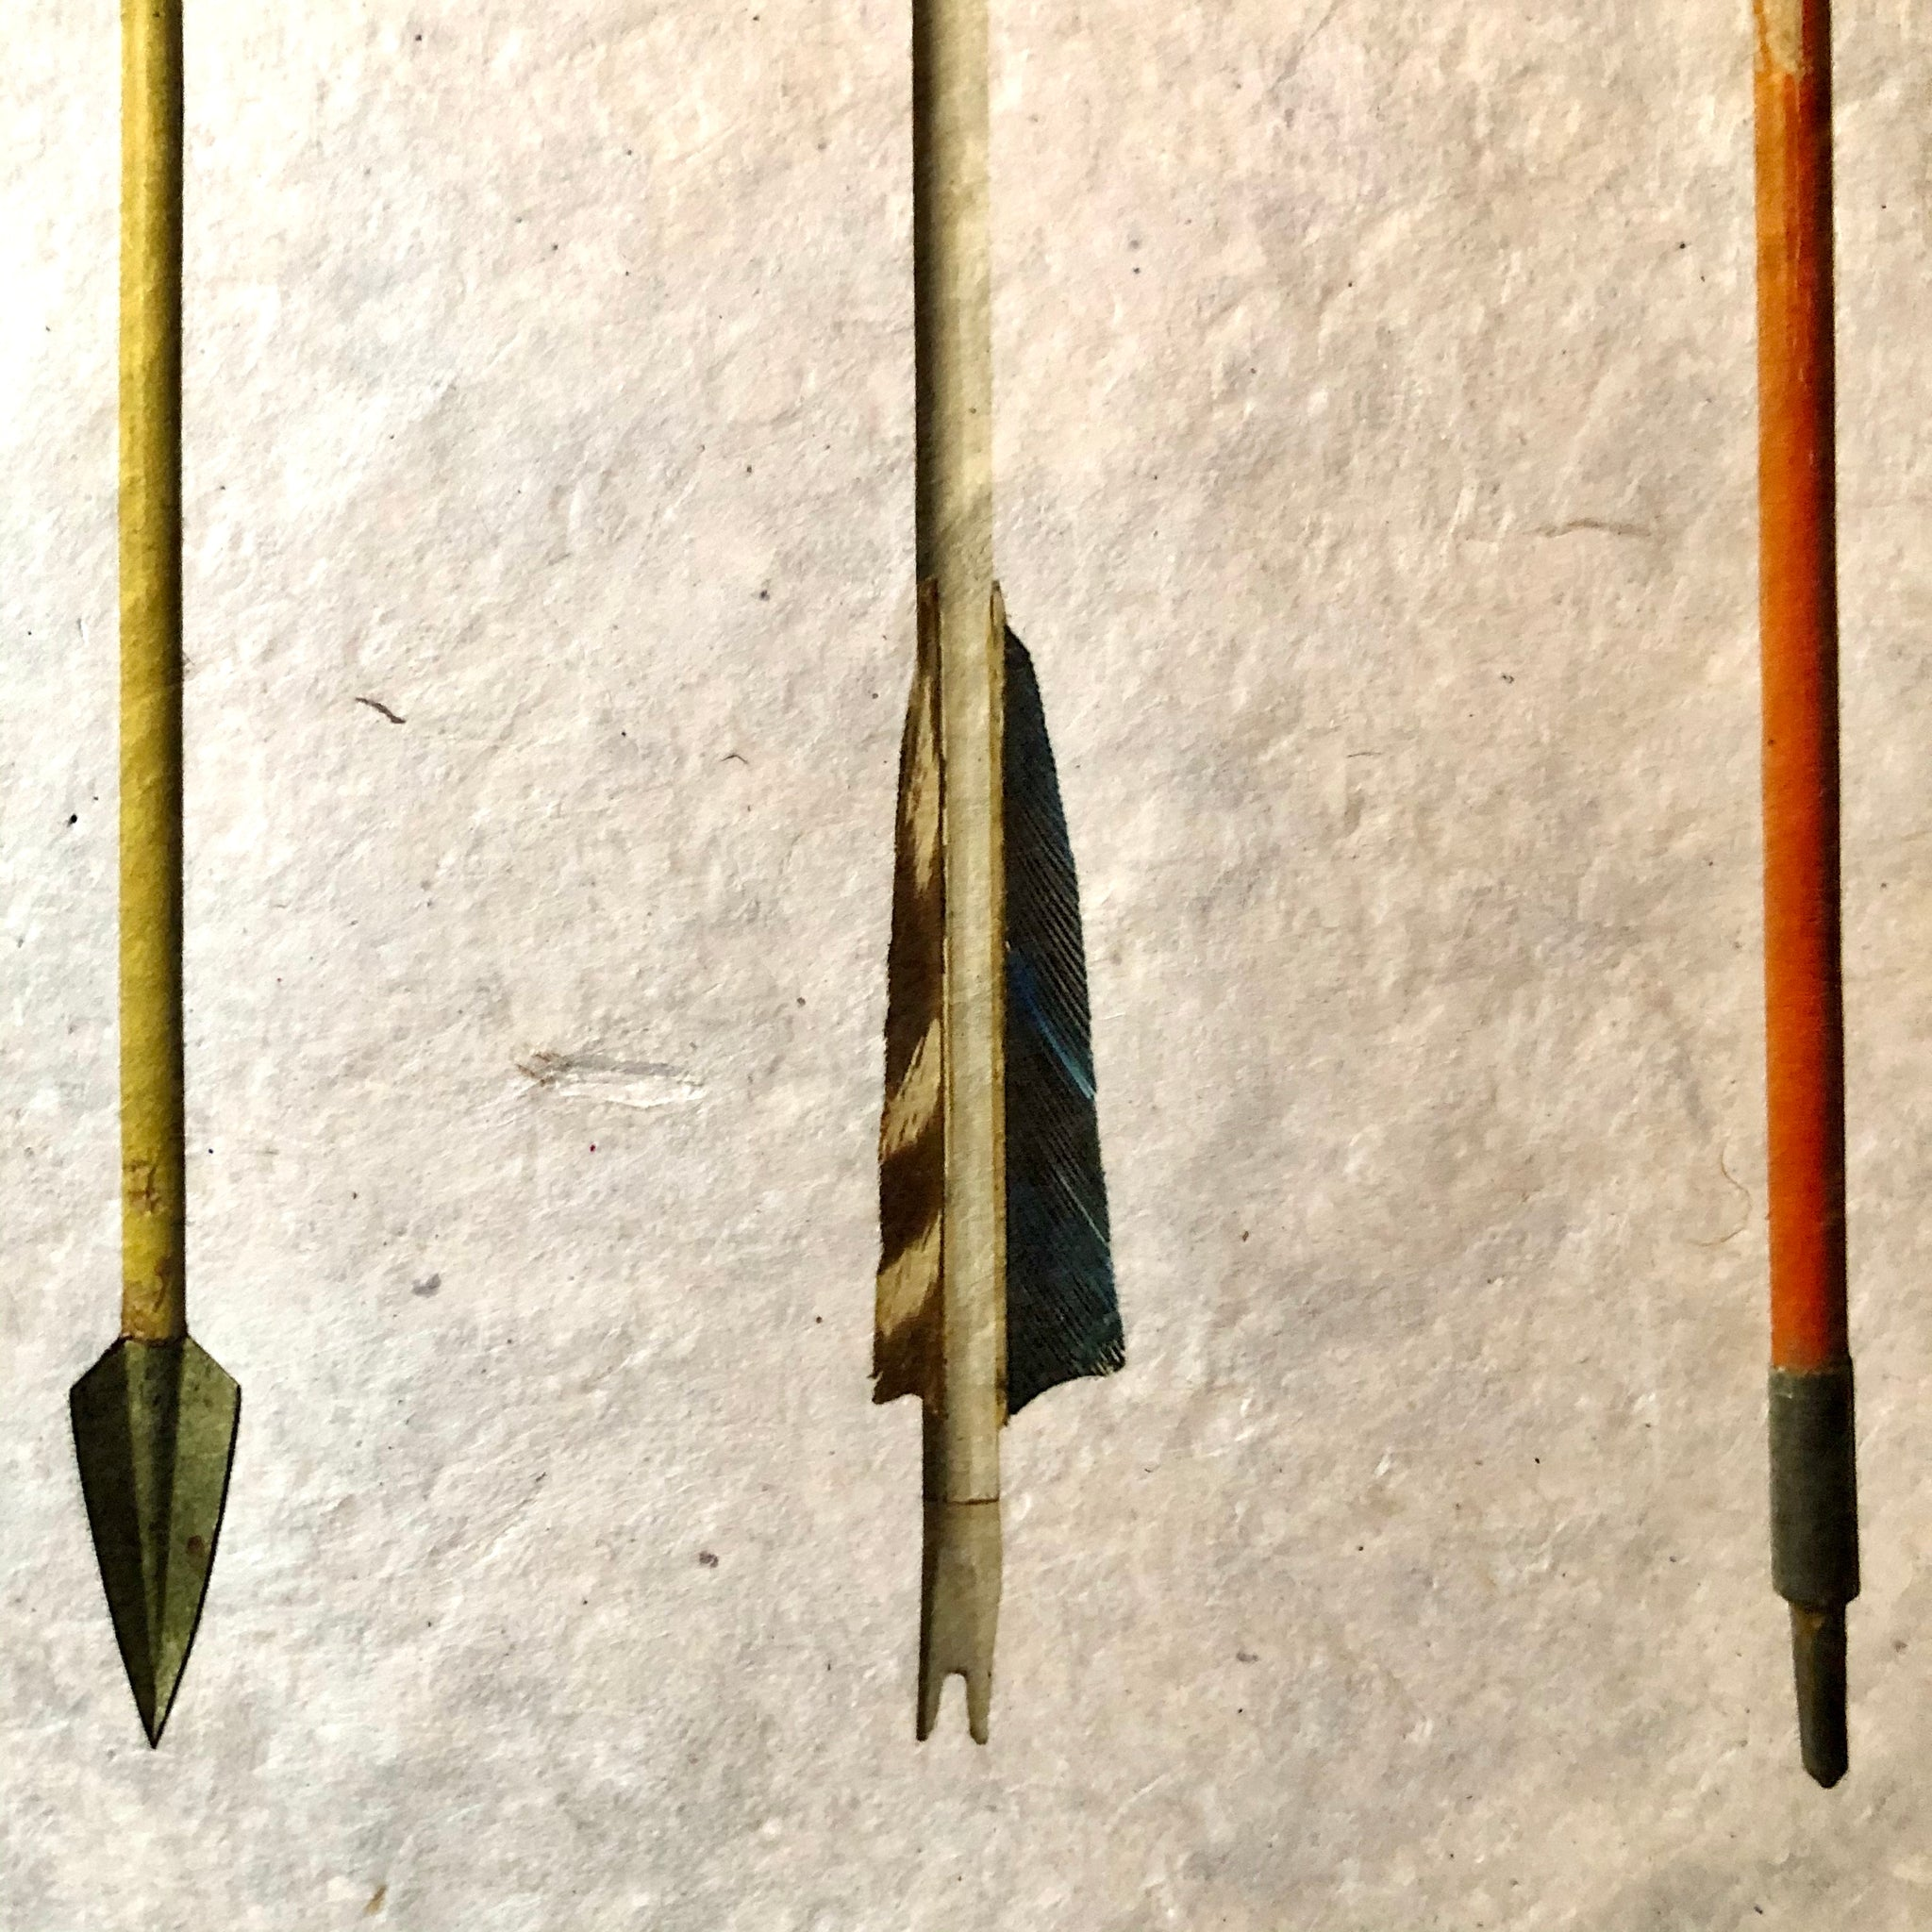 Vintage Arrow Study Number 2 on Handmade Paper by Barloga Studios - Upstate MN